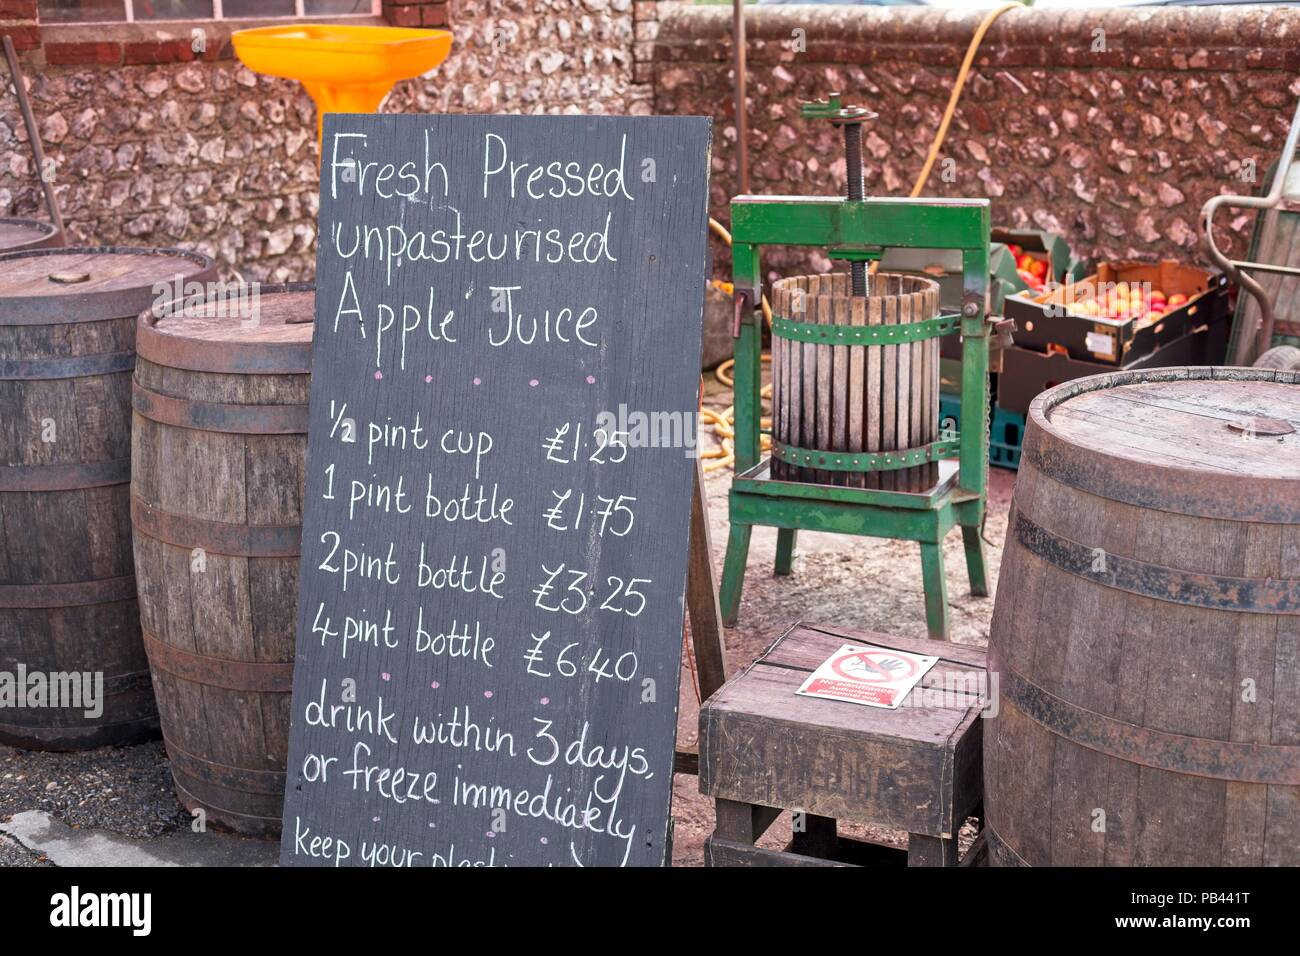 Fresh pressed apple juice for sale in Middle Farm shop, Sussex, UK - Stock Image